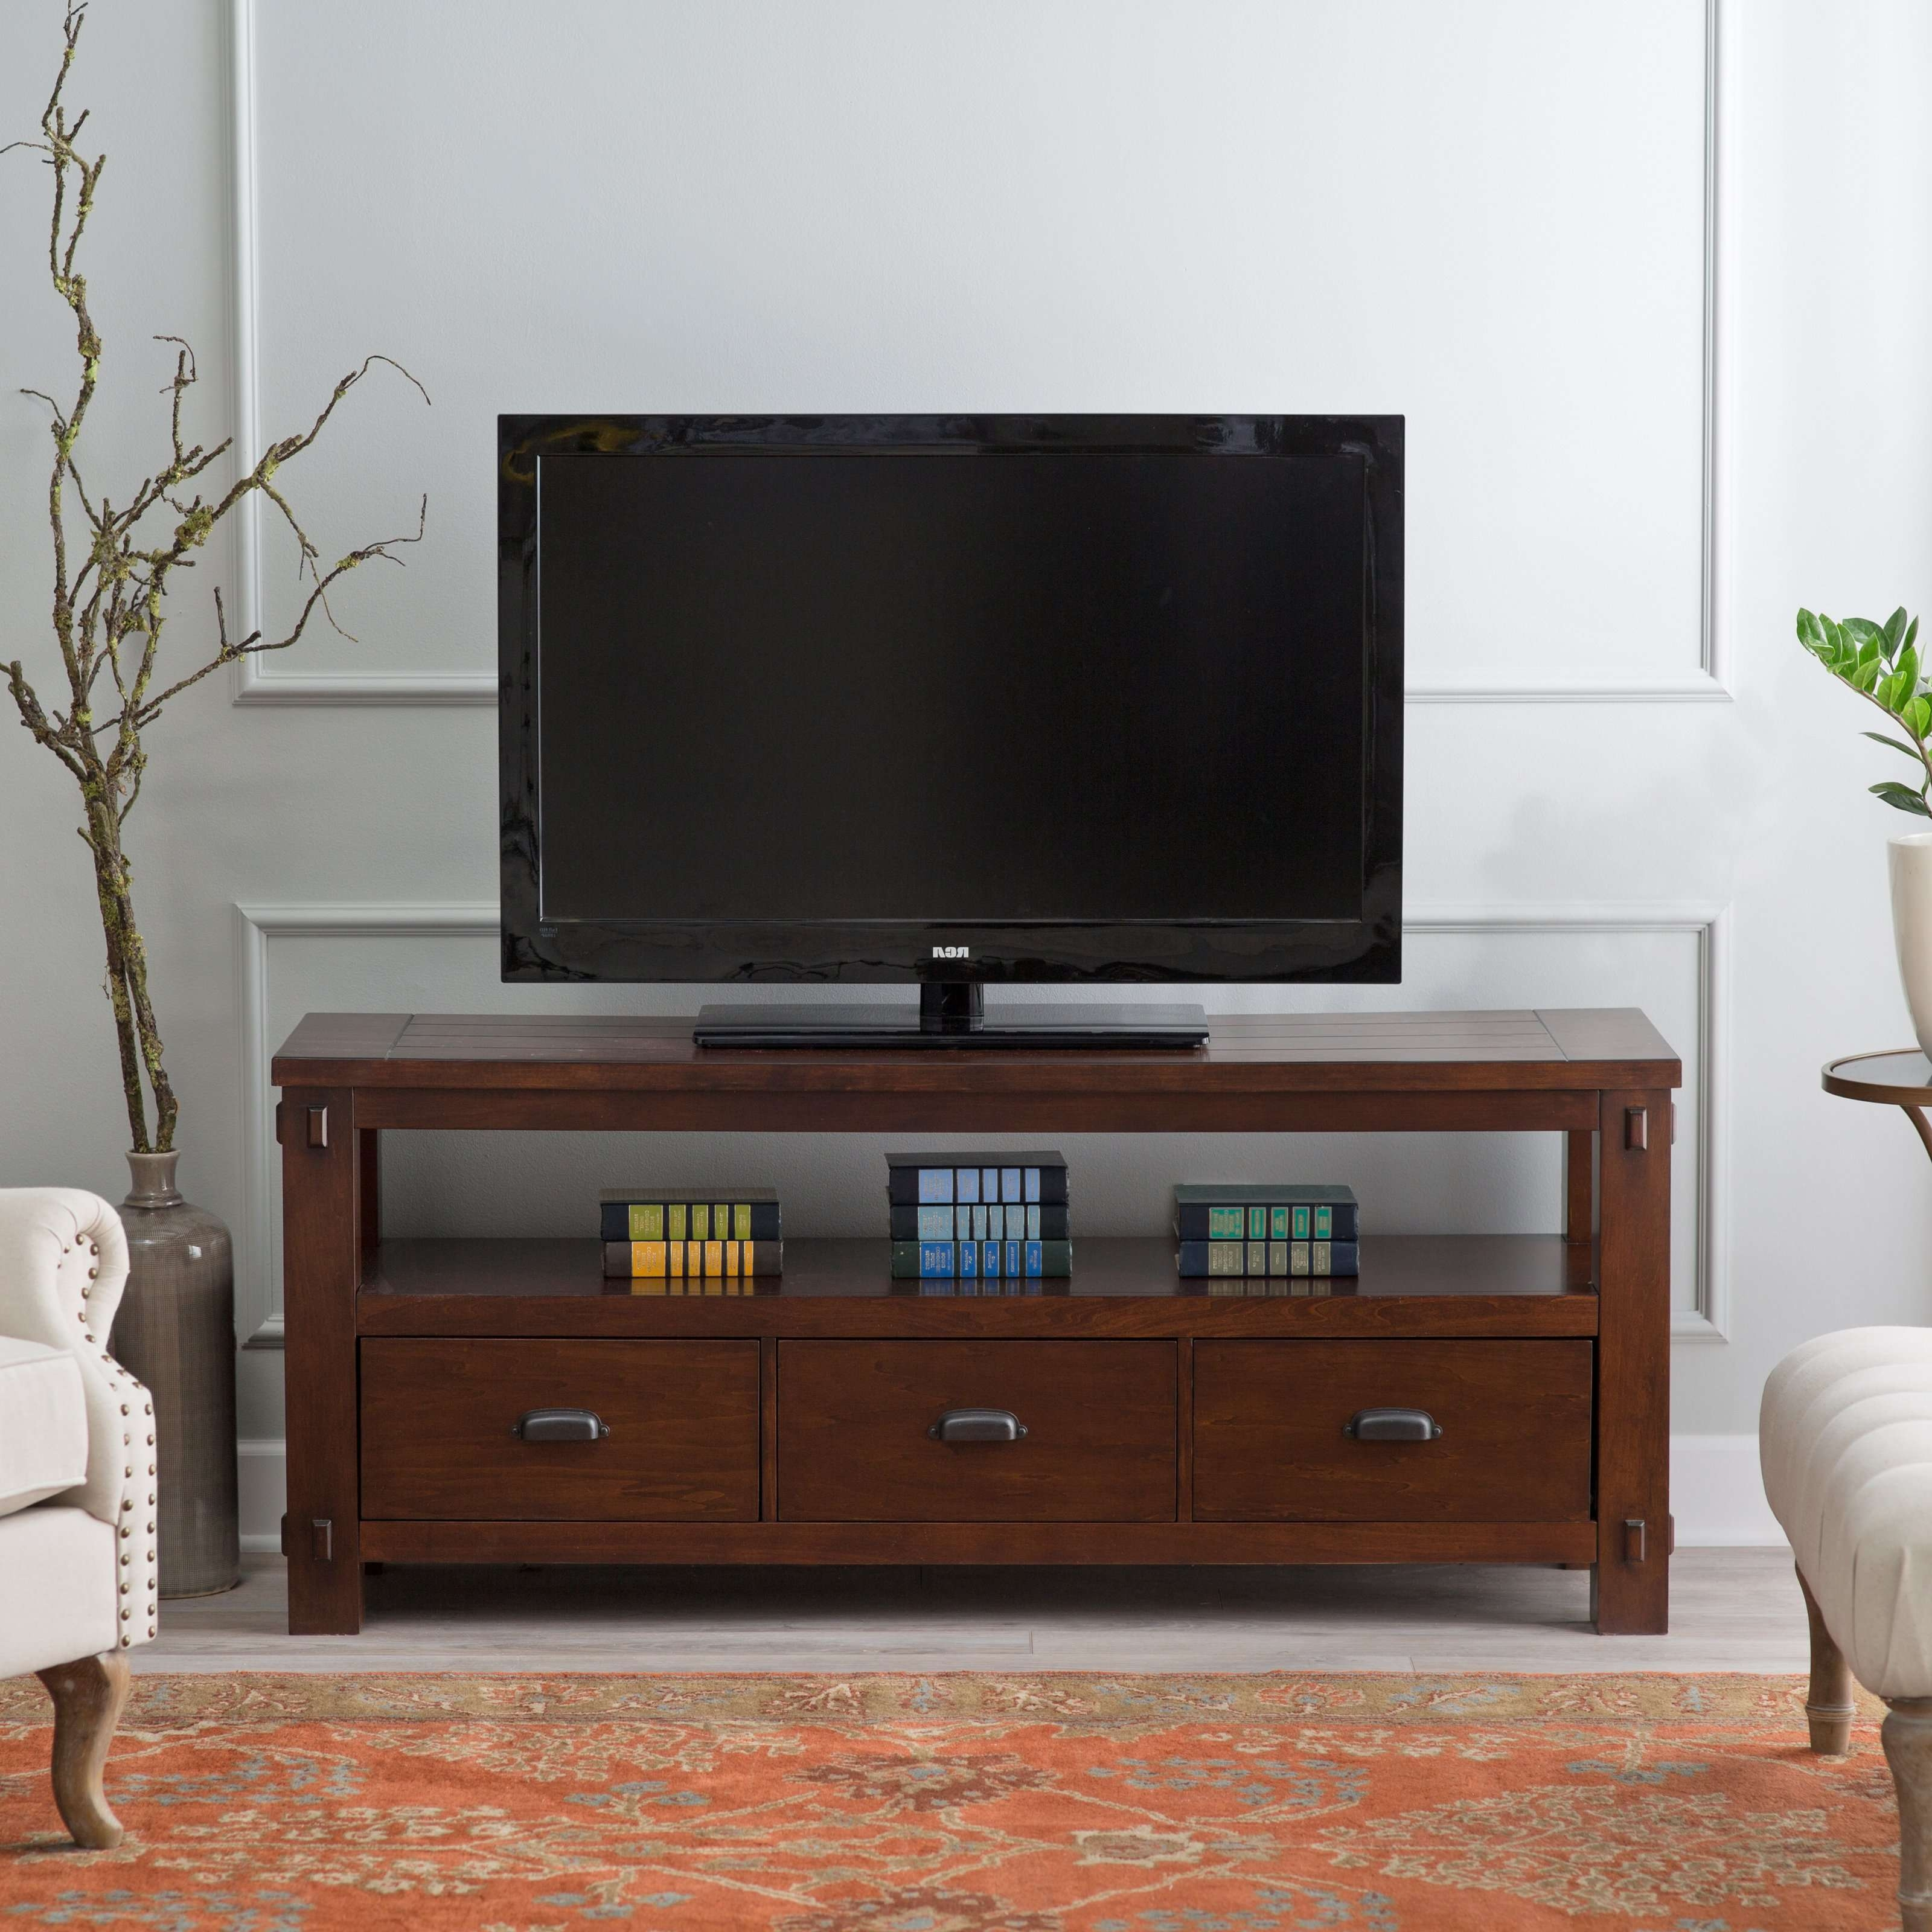 Tv Stand For 55 Inch Tv Pertaining To Tv Stands For 55 Inch Tv (View 11 of 15)